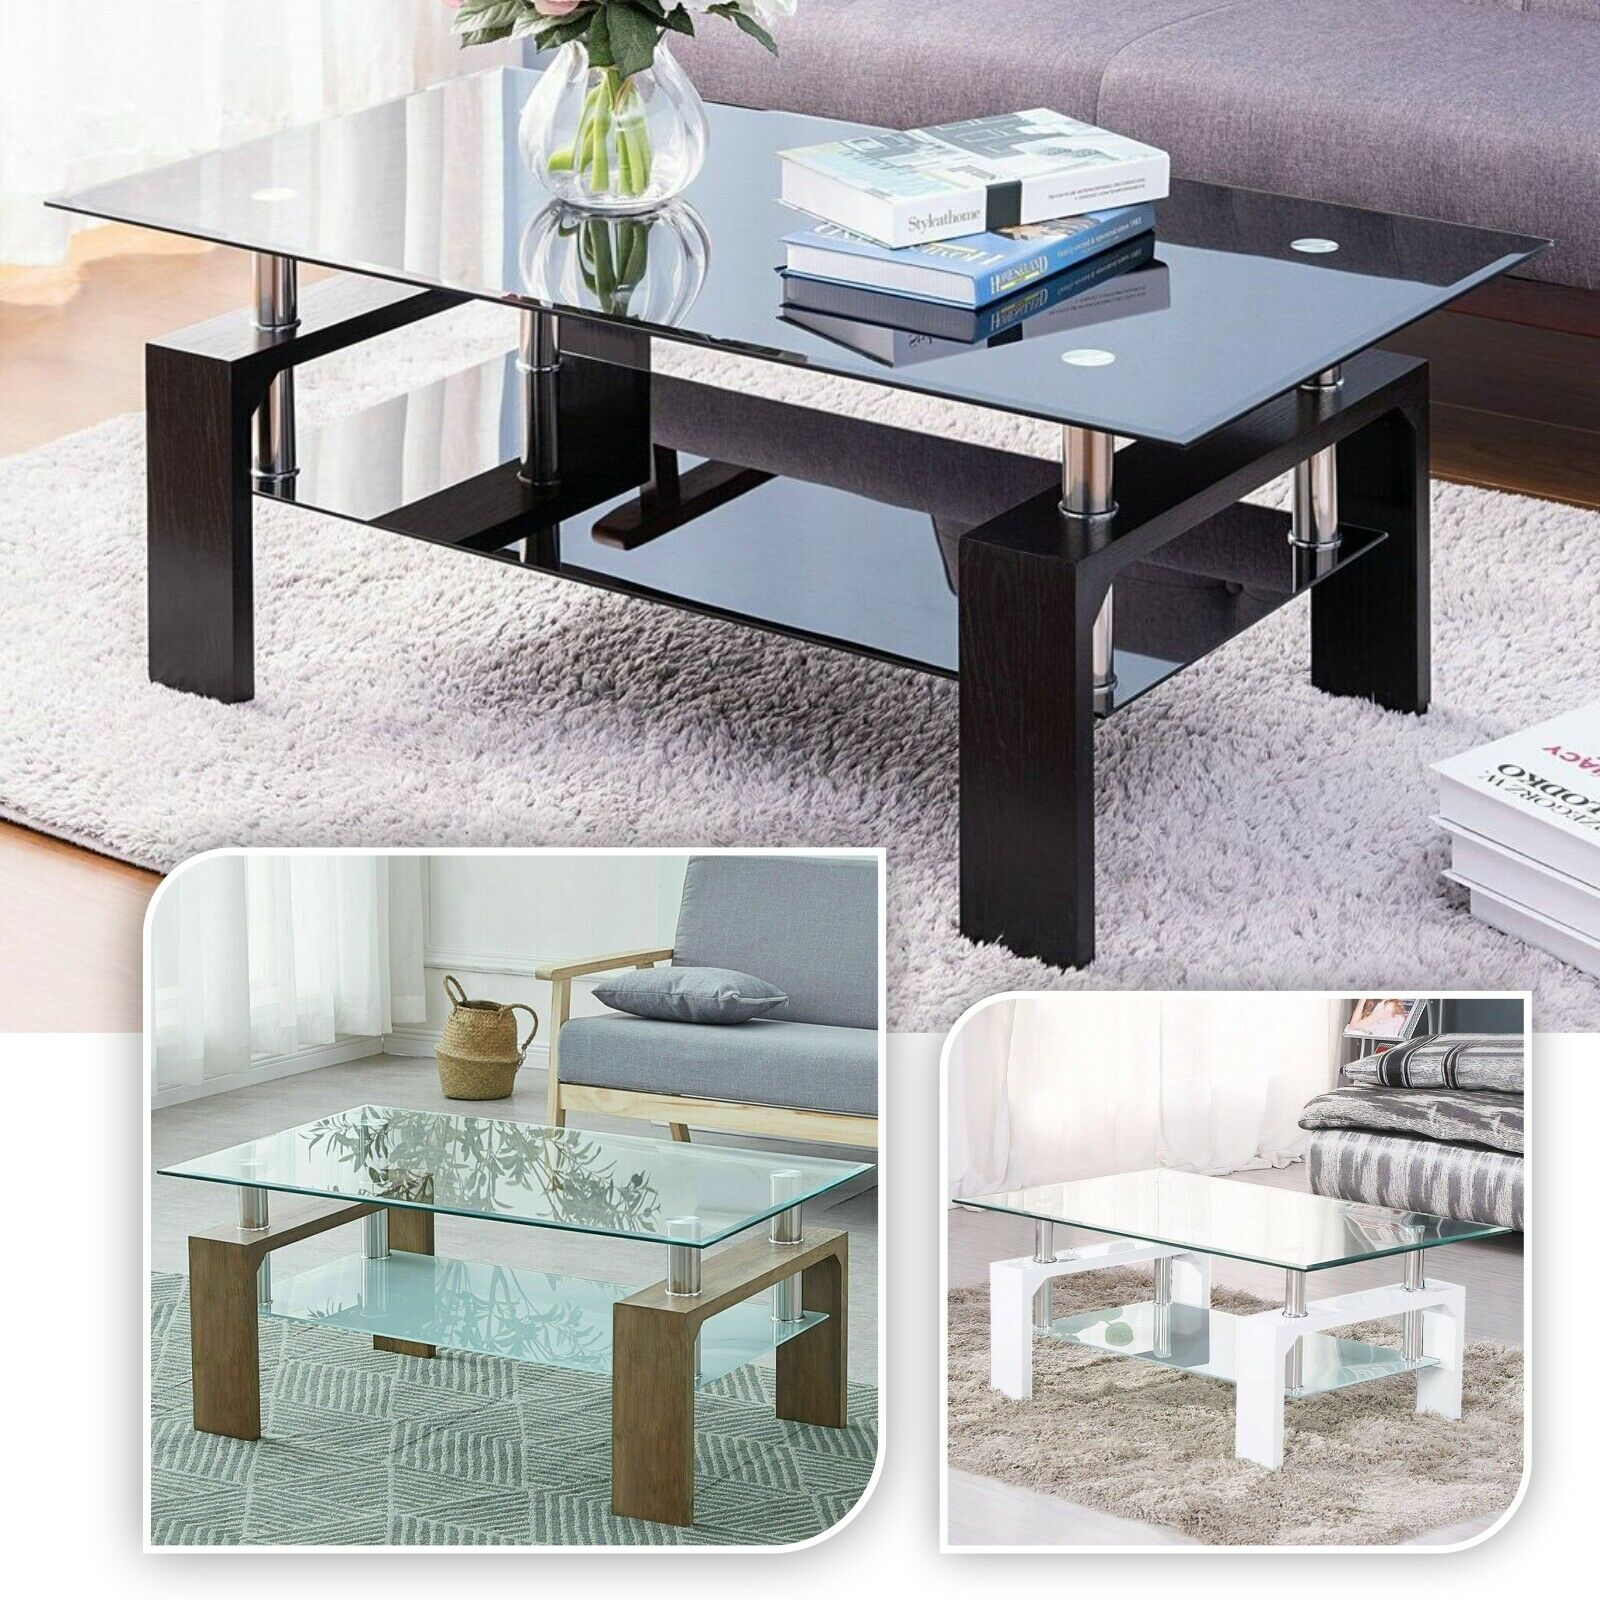 Picture of: Luna Modern 2 Shelf Bent Curved Clear Tempered Glass Coffee Table For Sale Ebay